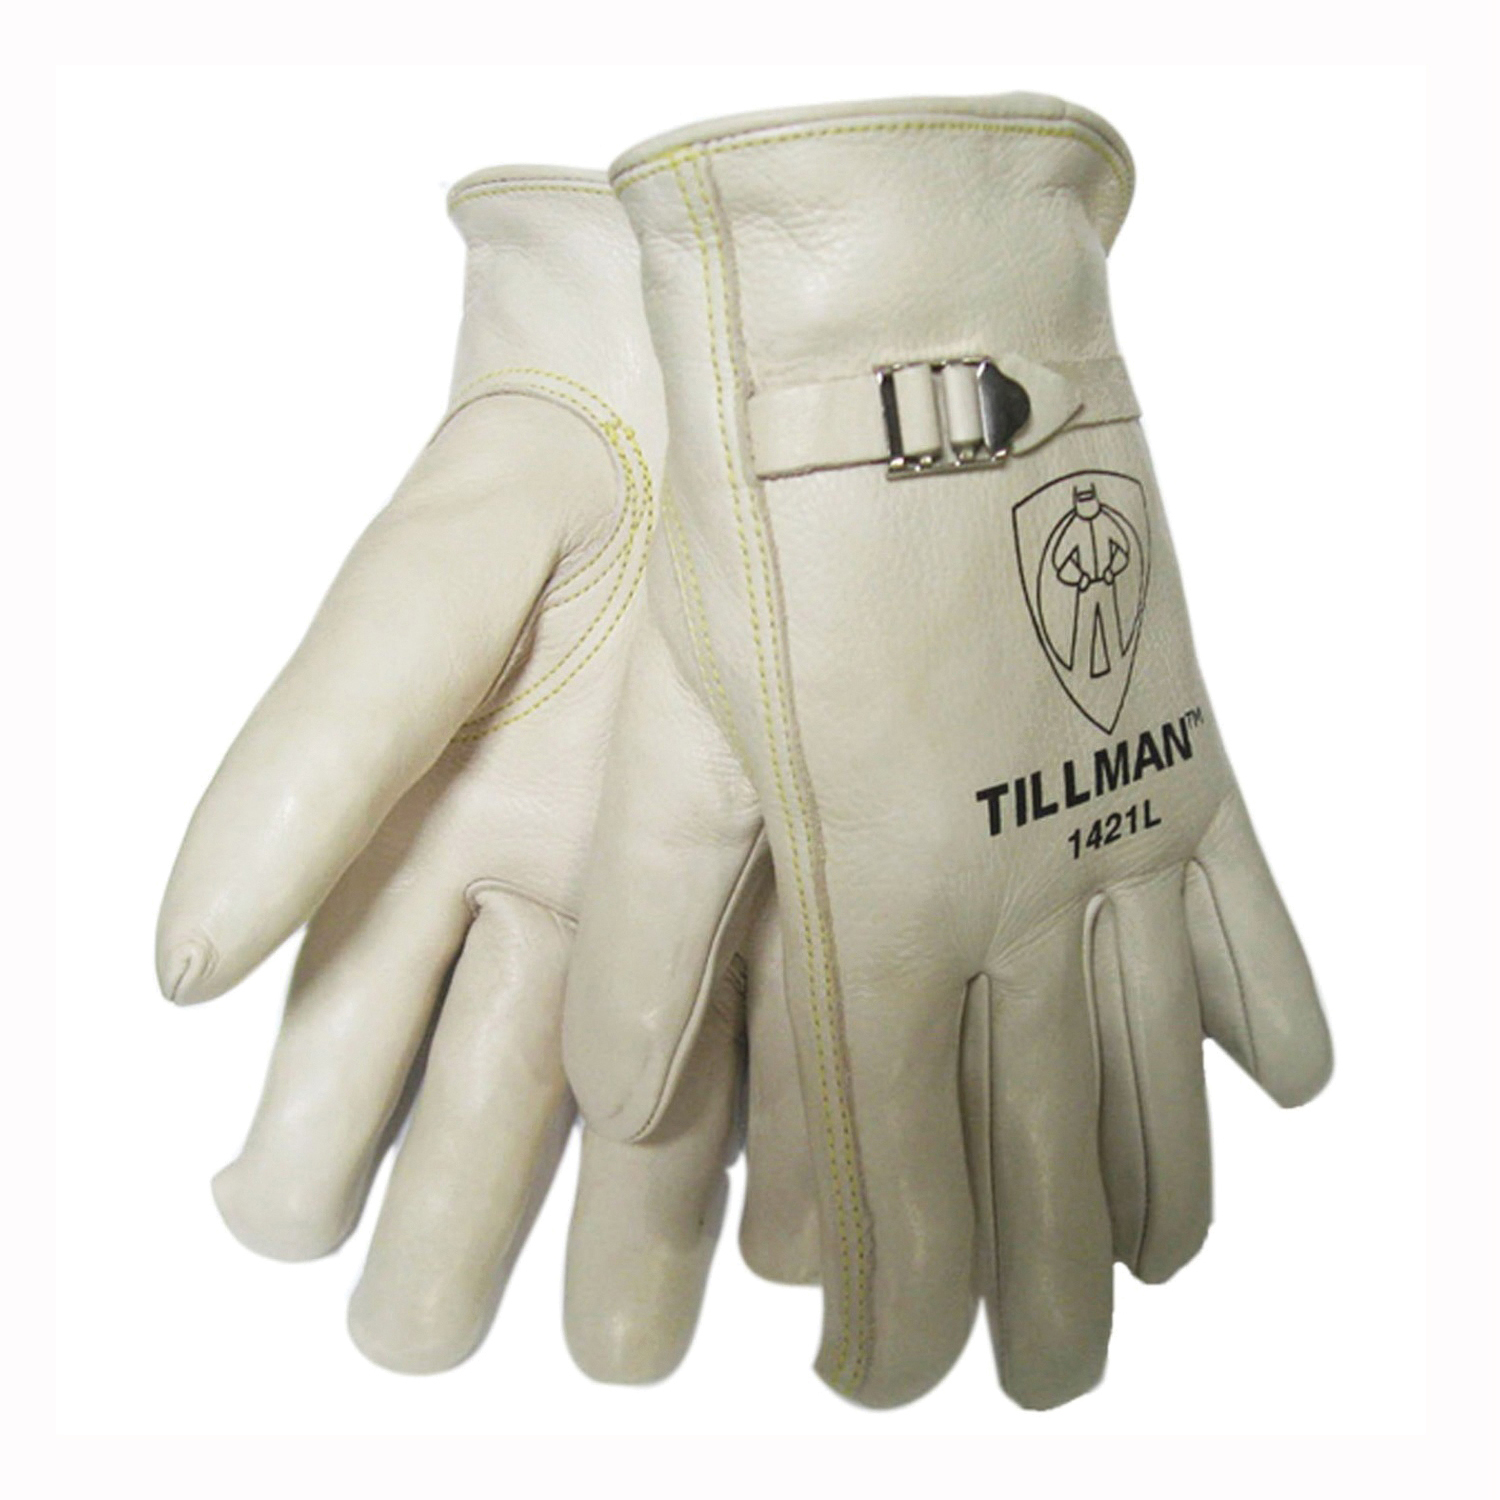 Tillman™ 1421 Premium Grade General Purpose Gloves, Drivers, Top Grain Cowhide Leather, Pearl, Rolled Cuff, Unlined Lining, Gunn Cut/Keystone Thumb